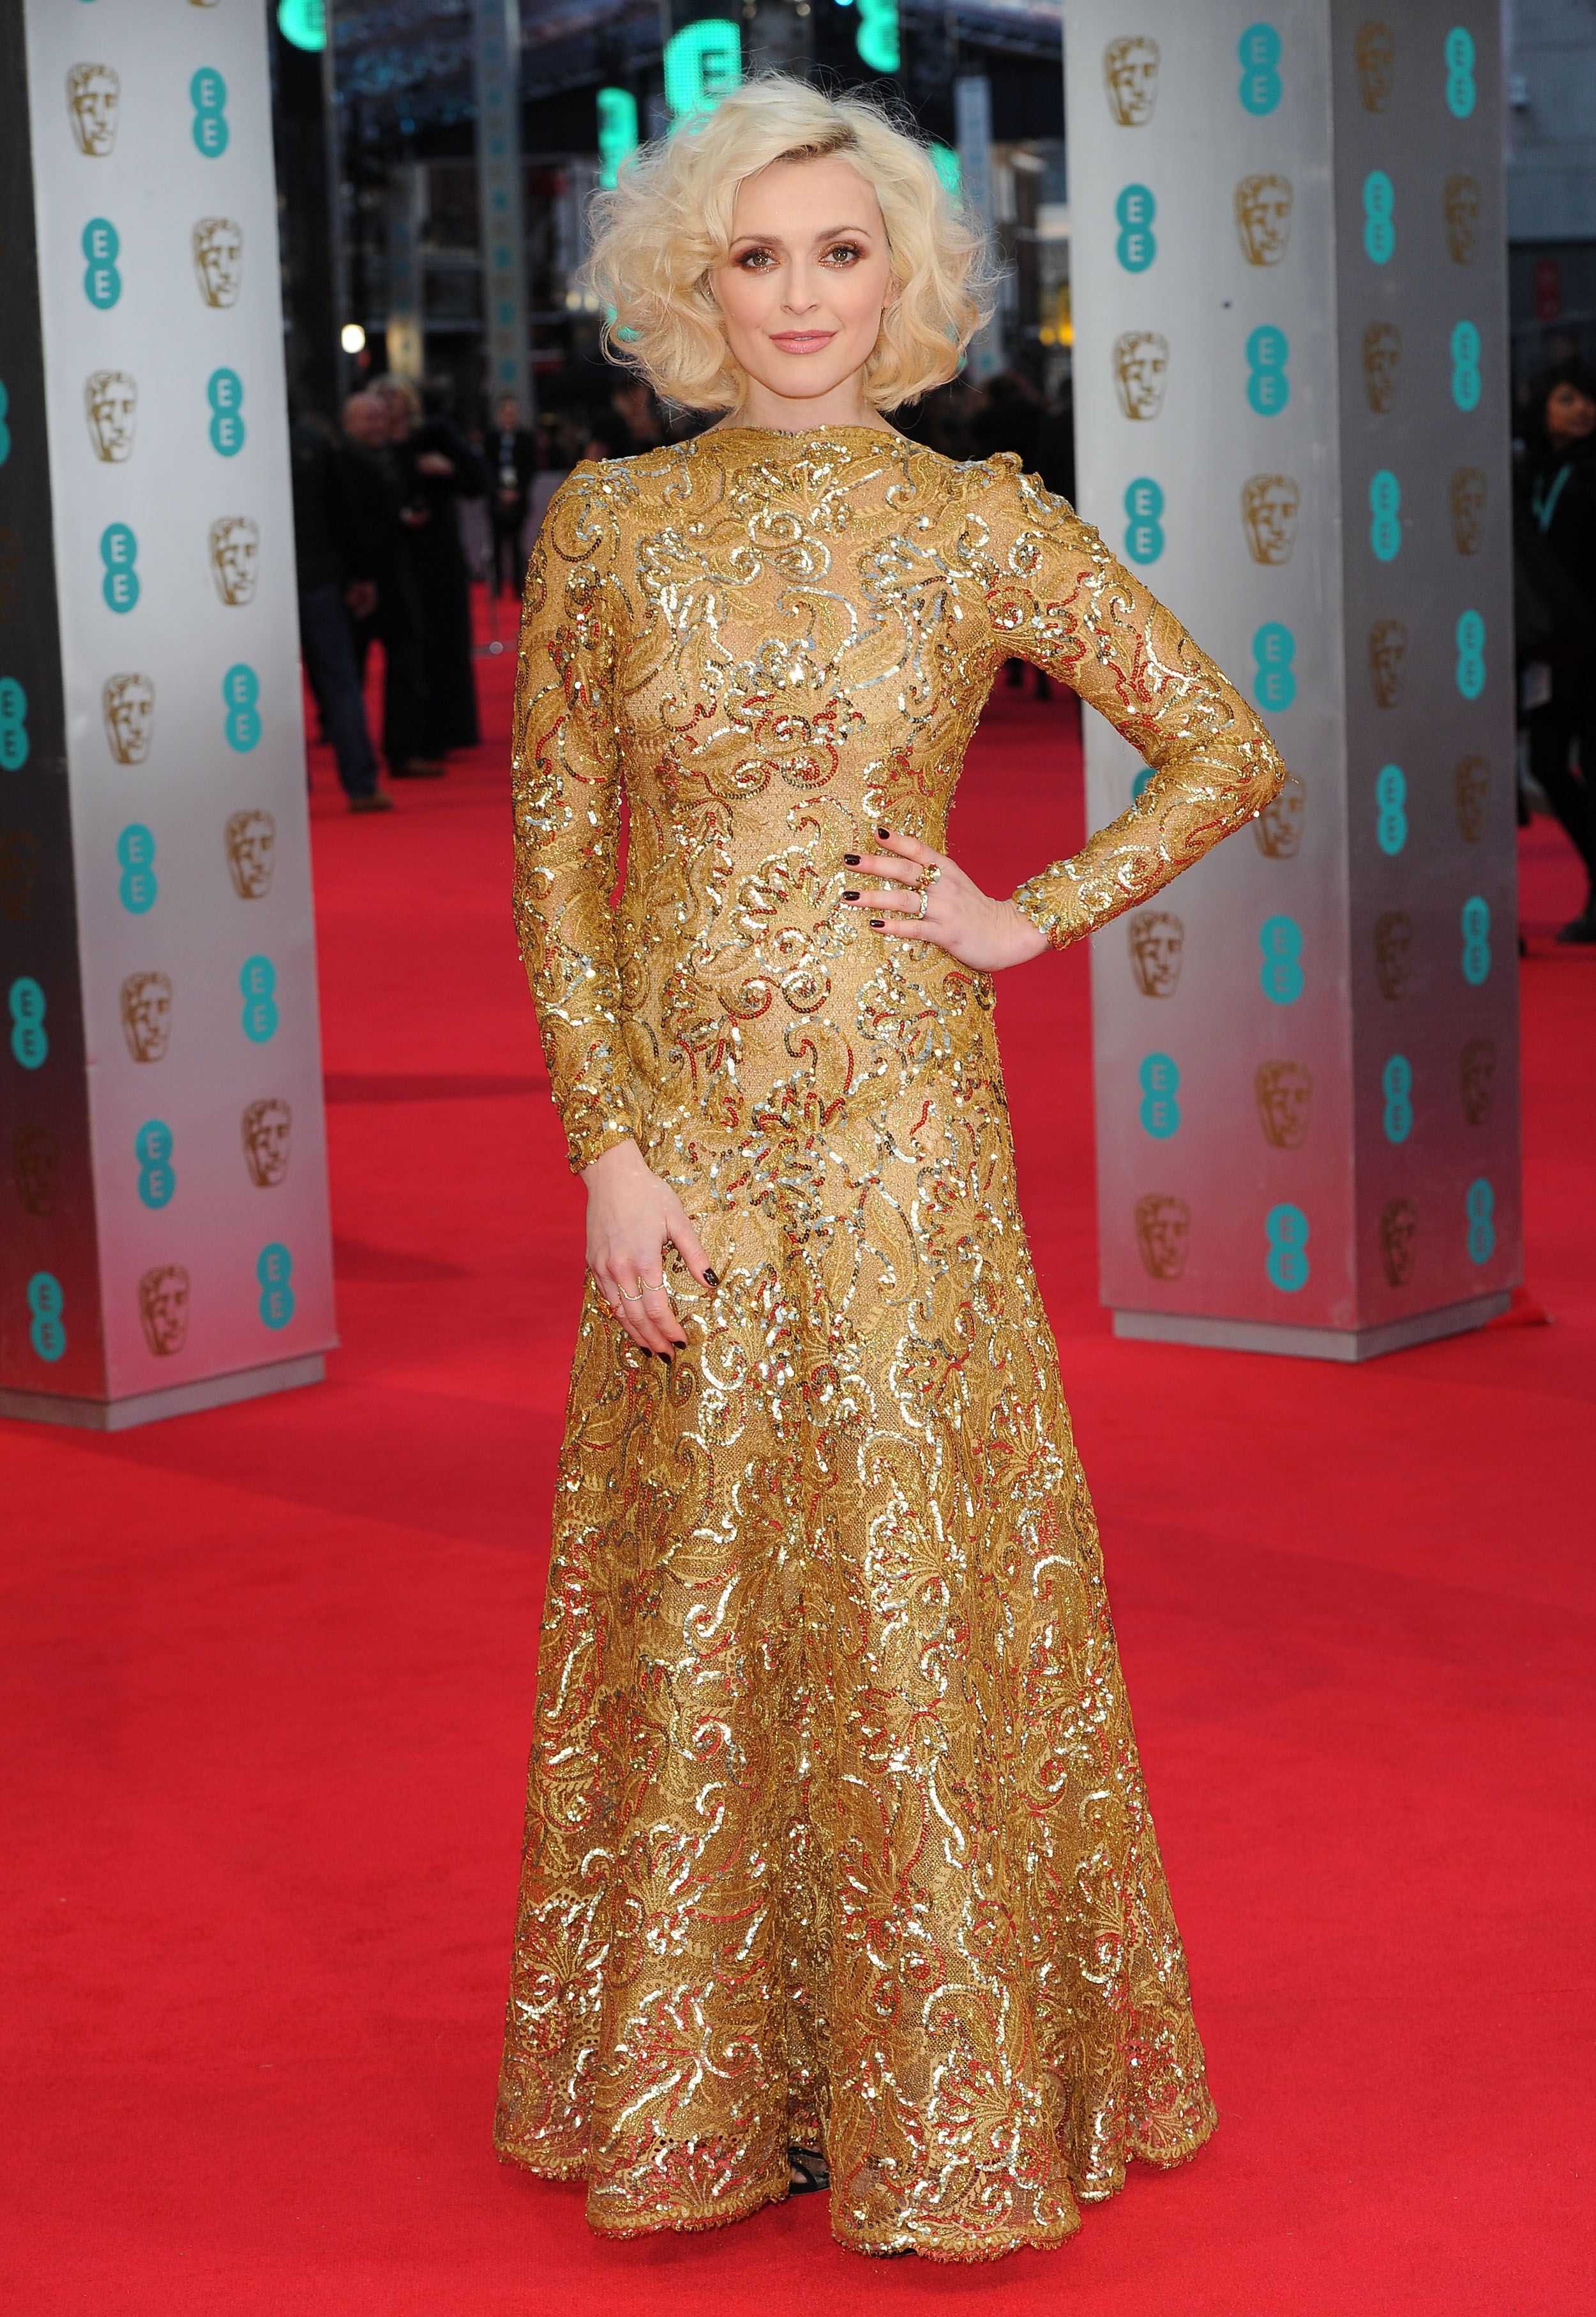 Heres British Tv Presenter Fearne Cotton Wore According To Red Carpet Fashion Awards A  Scaasi Gown Long Sleeve